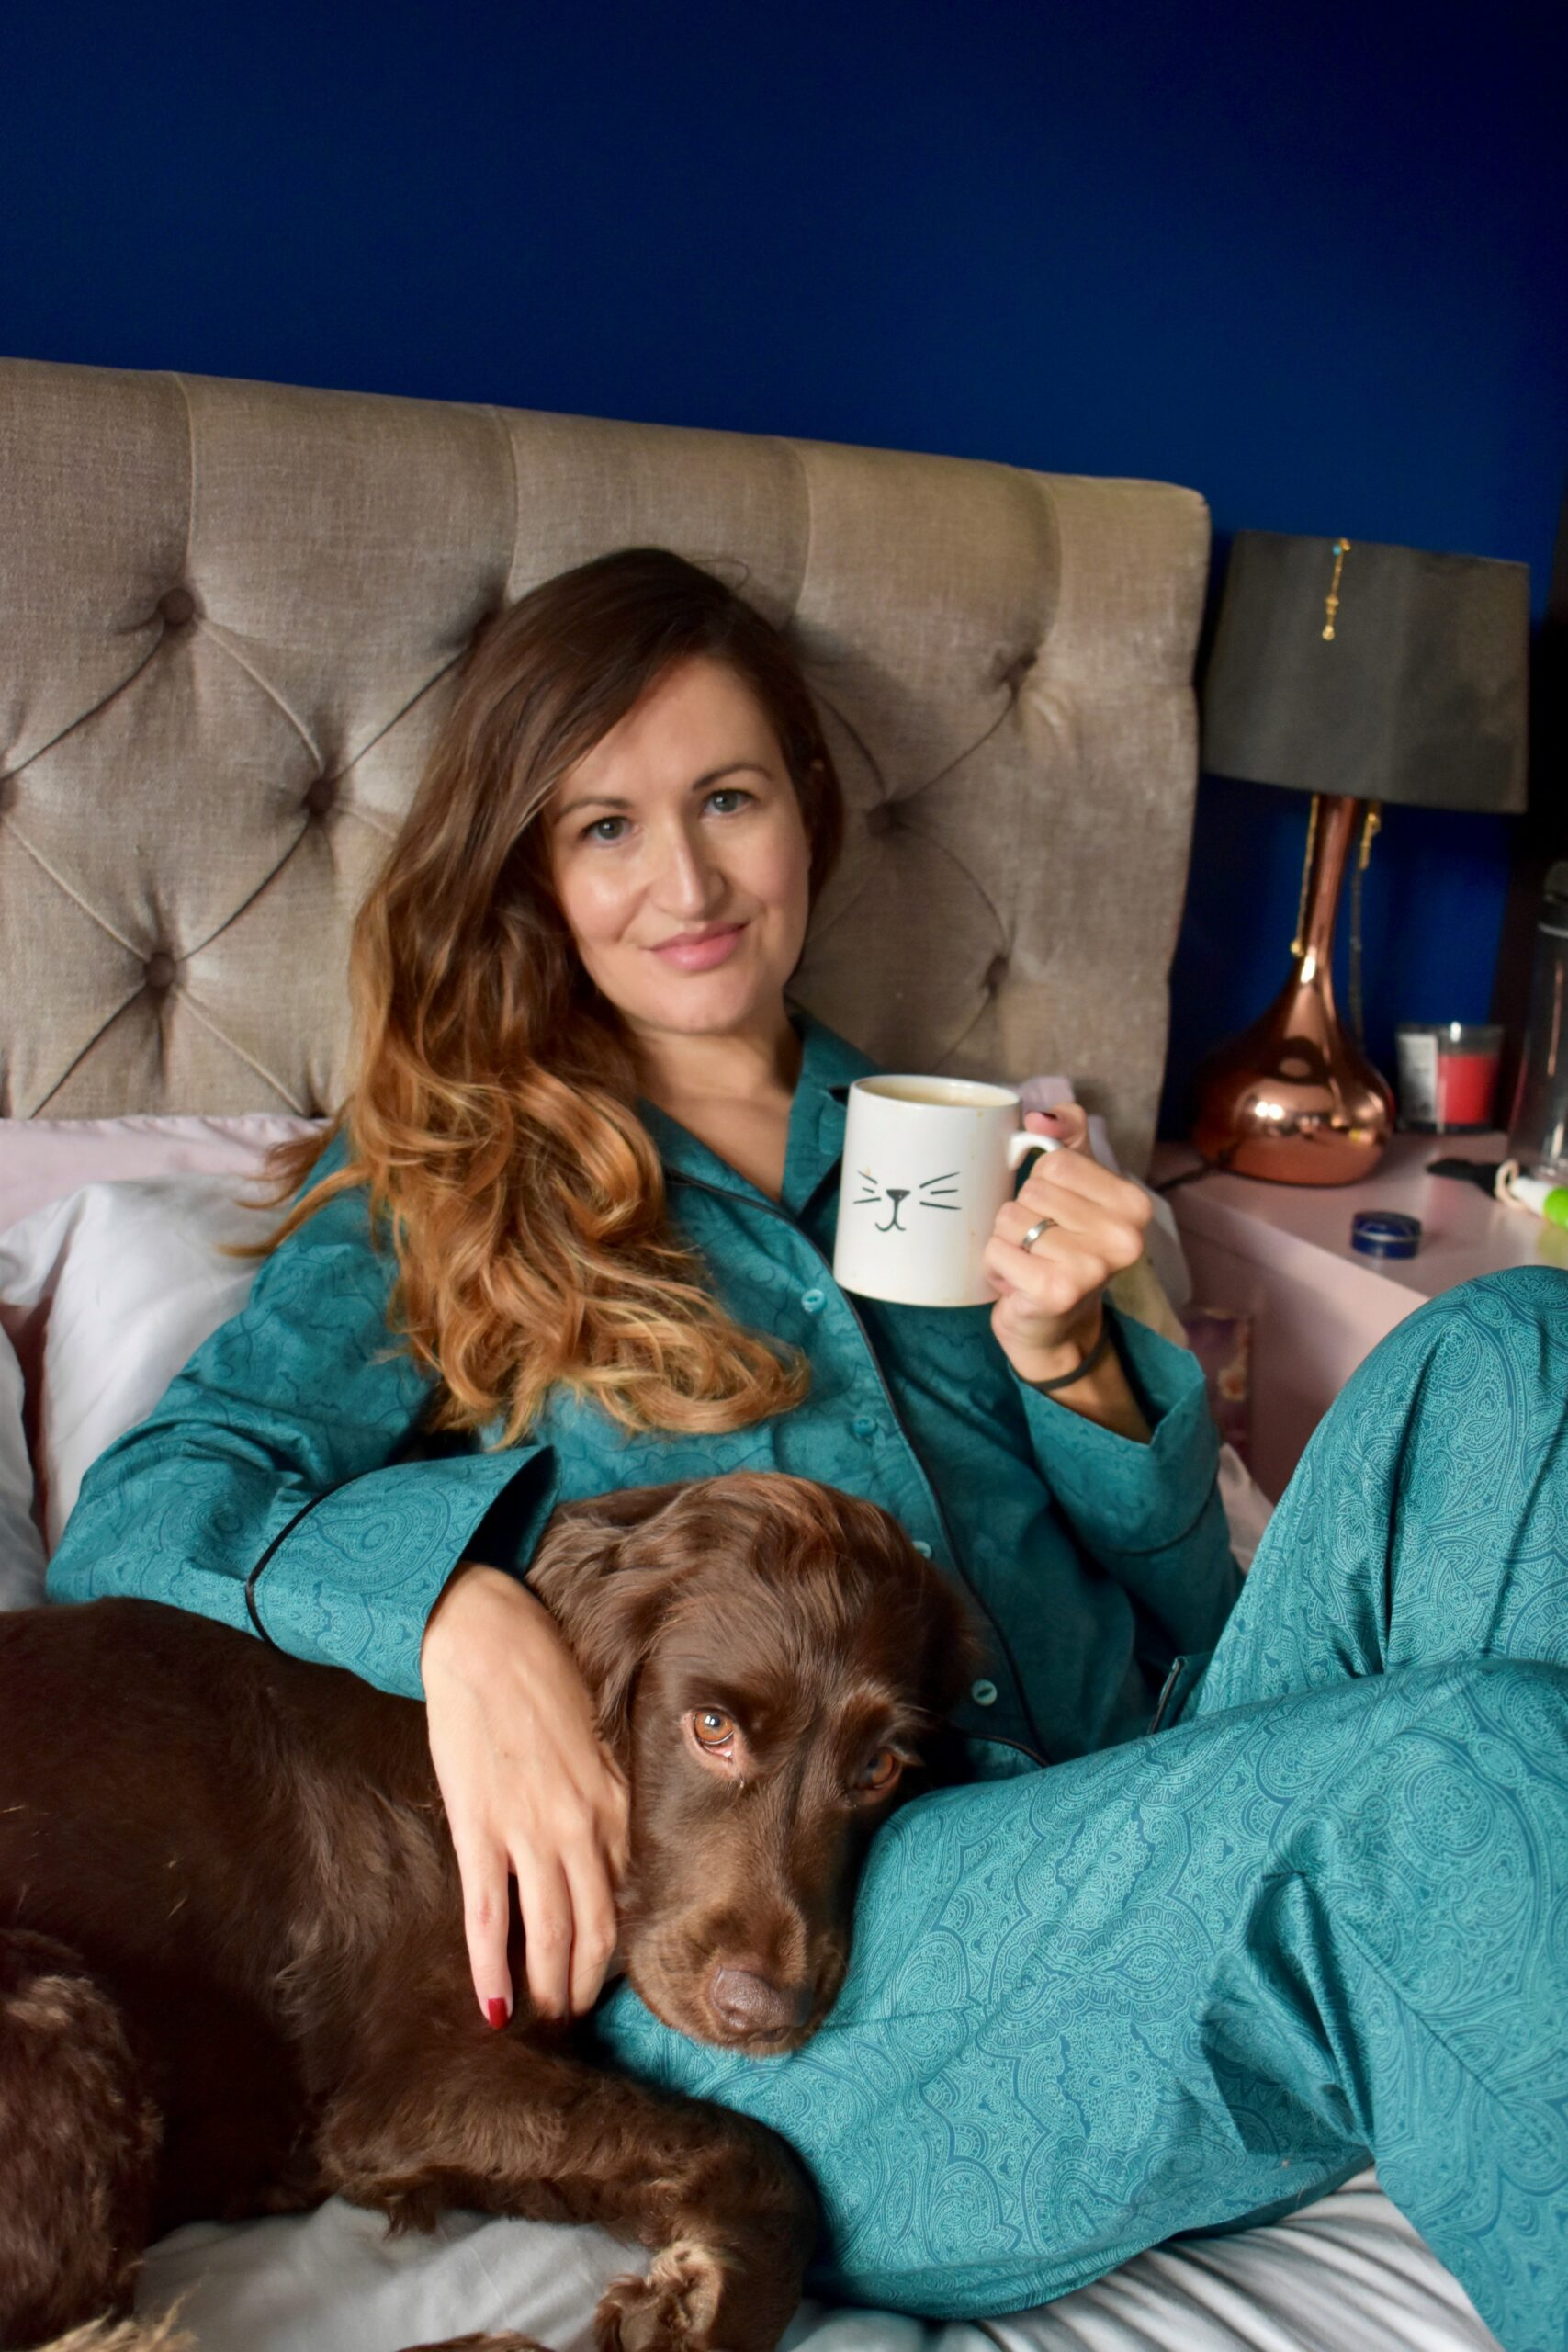 Woman relaxing on a bed in loungewear pajamas